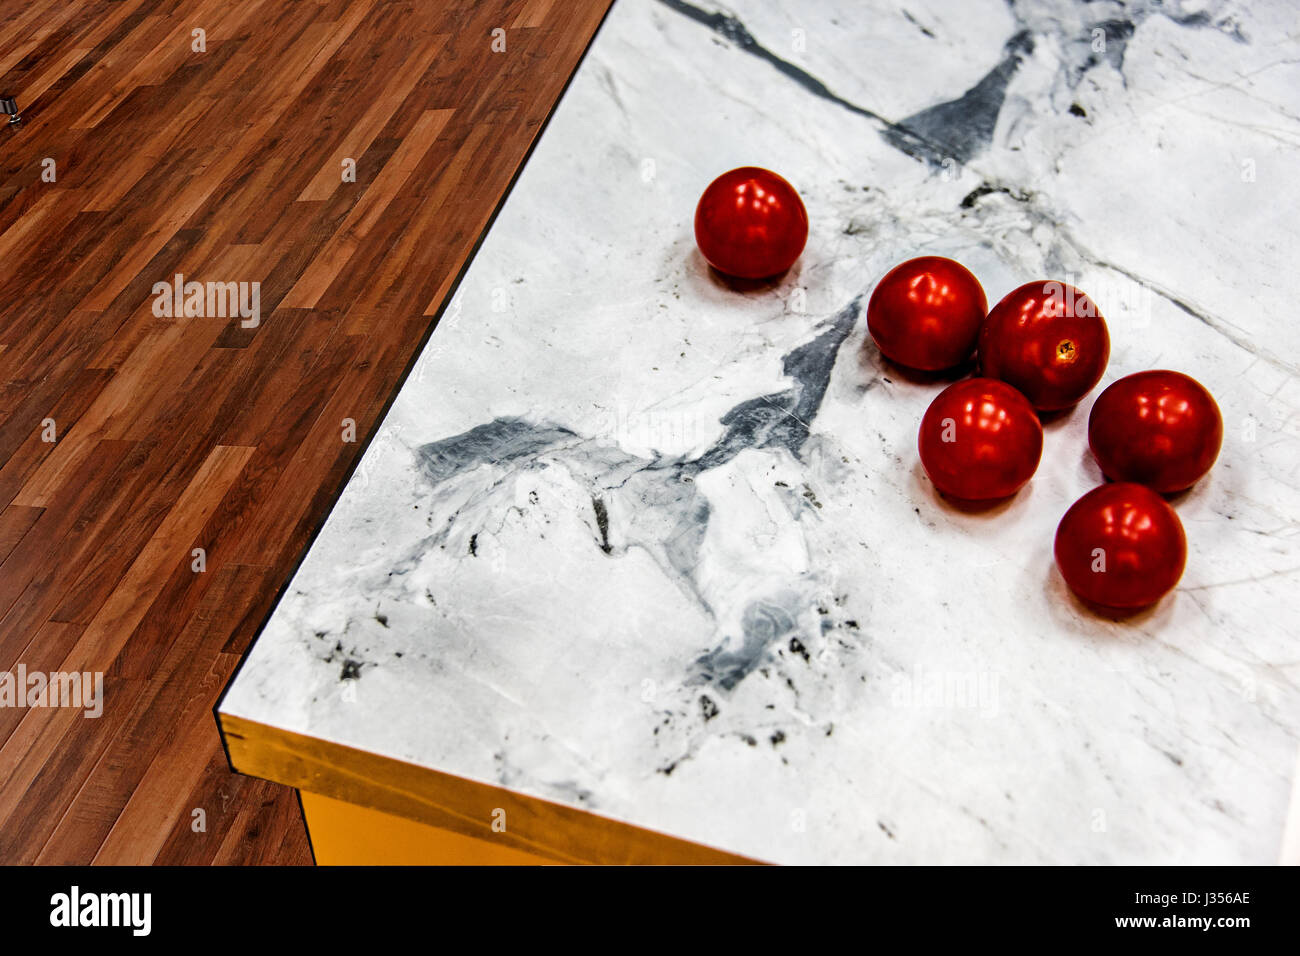 Worktops Stock Photos Worktops Stock Images Alamy